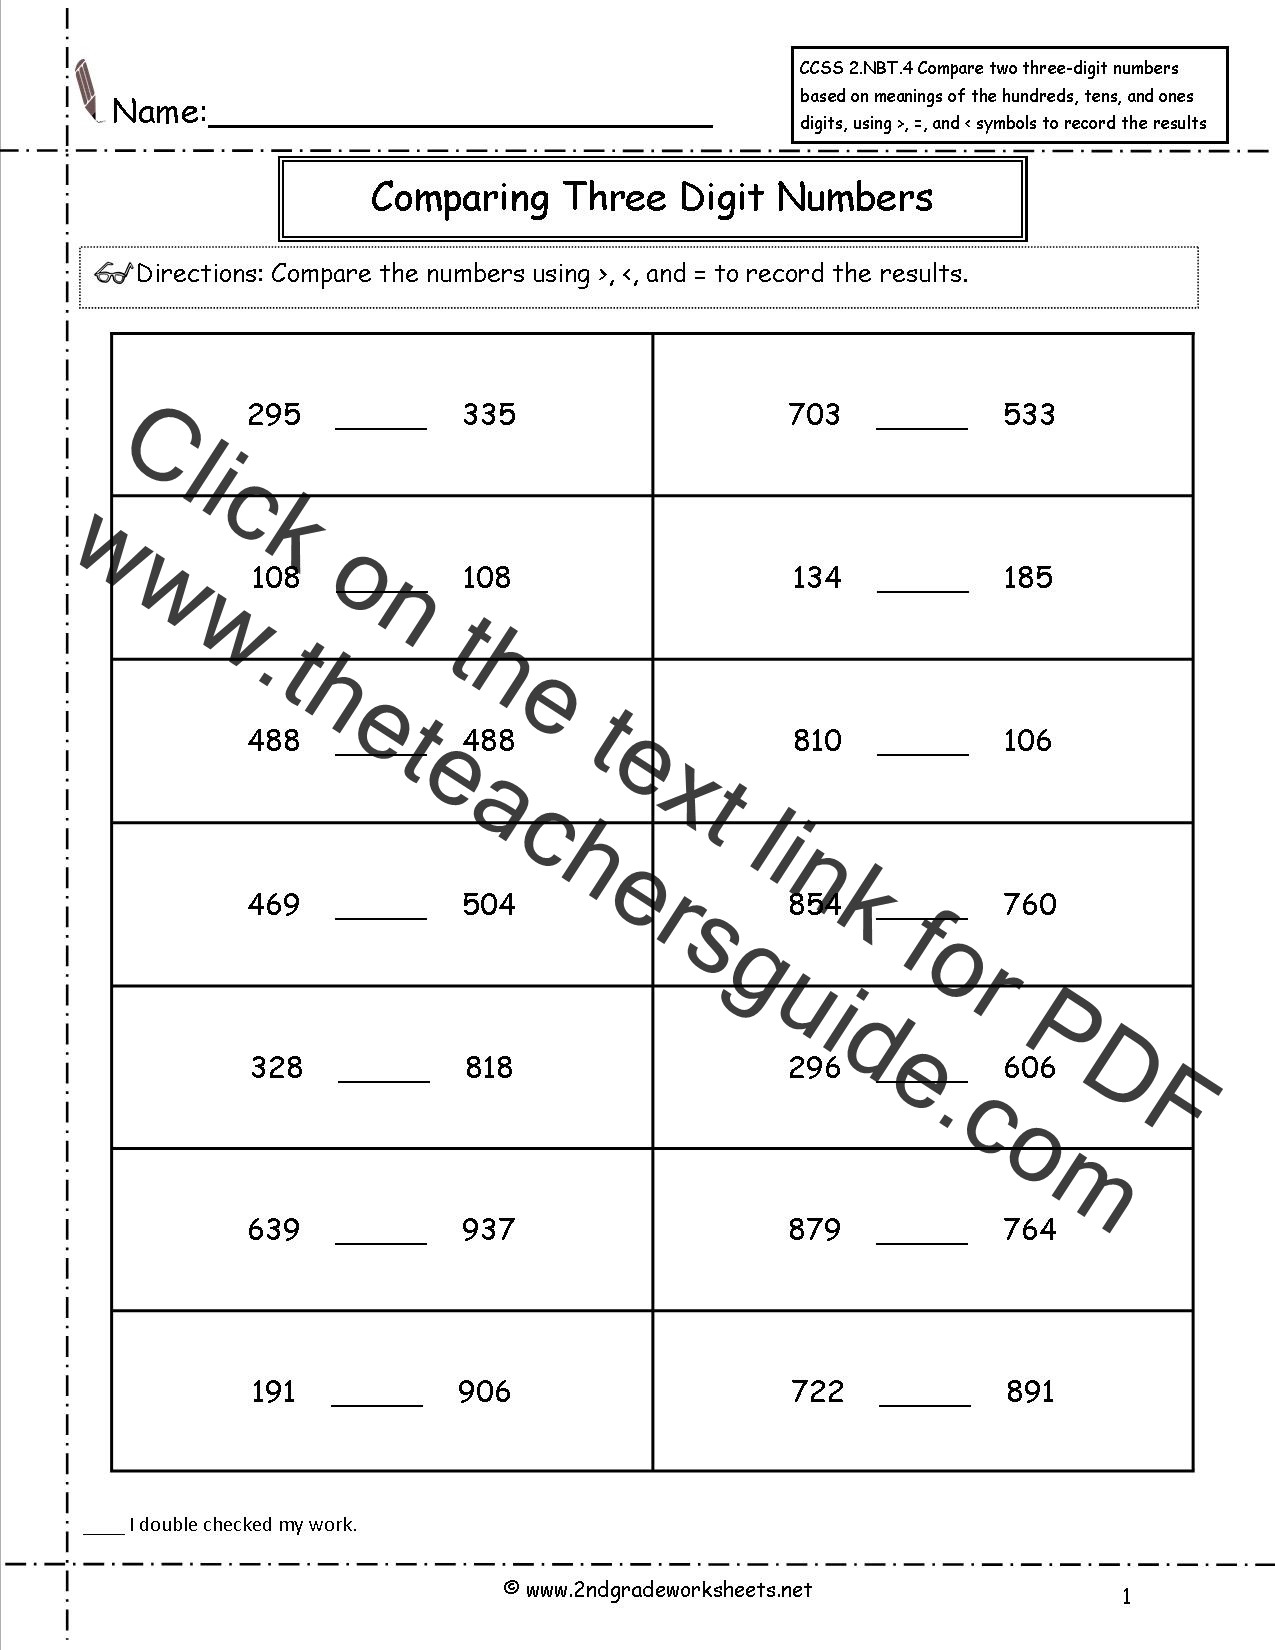 Fidget Spinner Math Worksheet Math Division Worksheets Grade 4 Free Fid Spinner Math